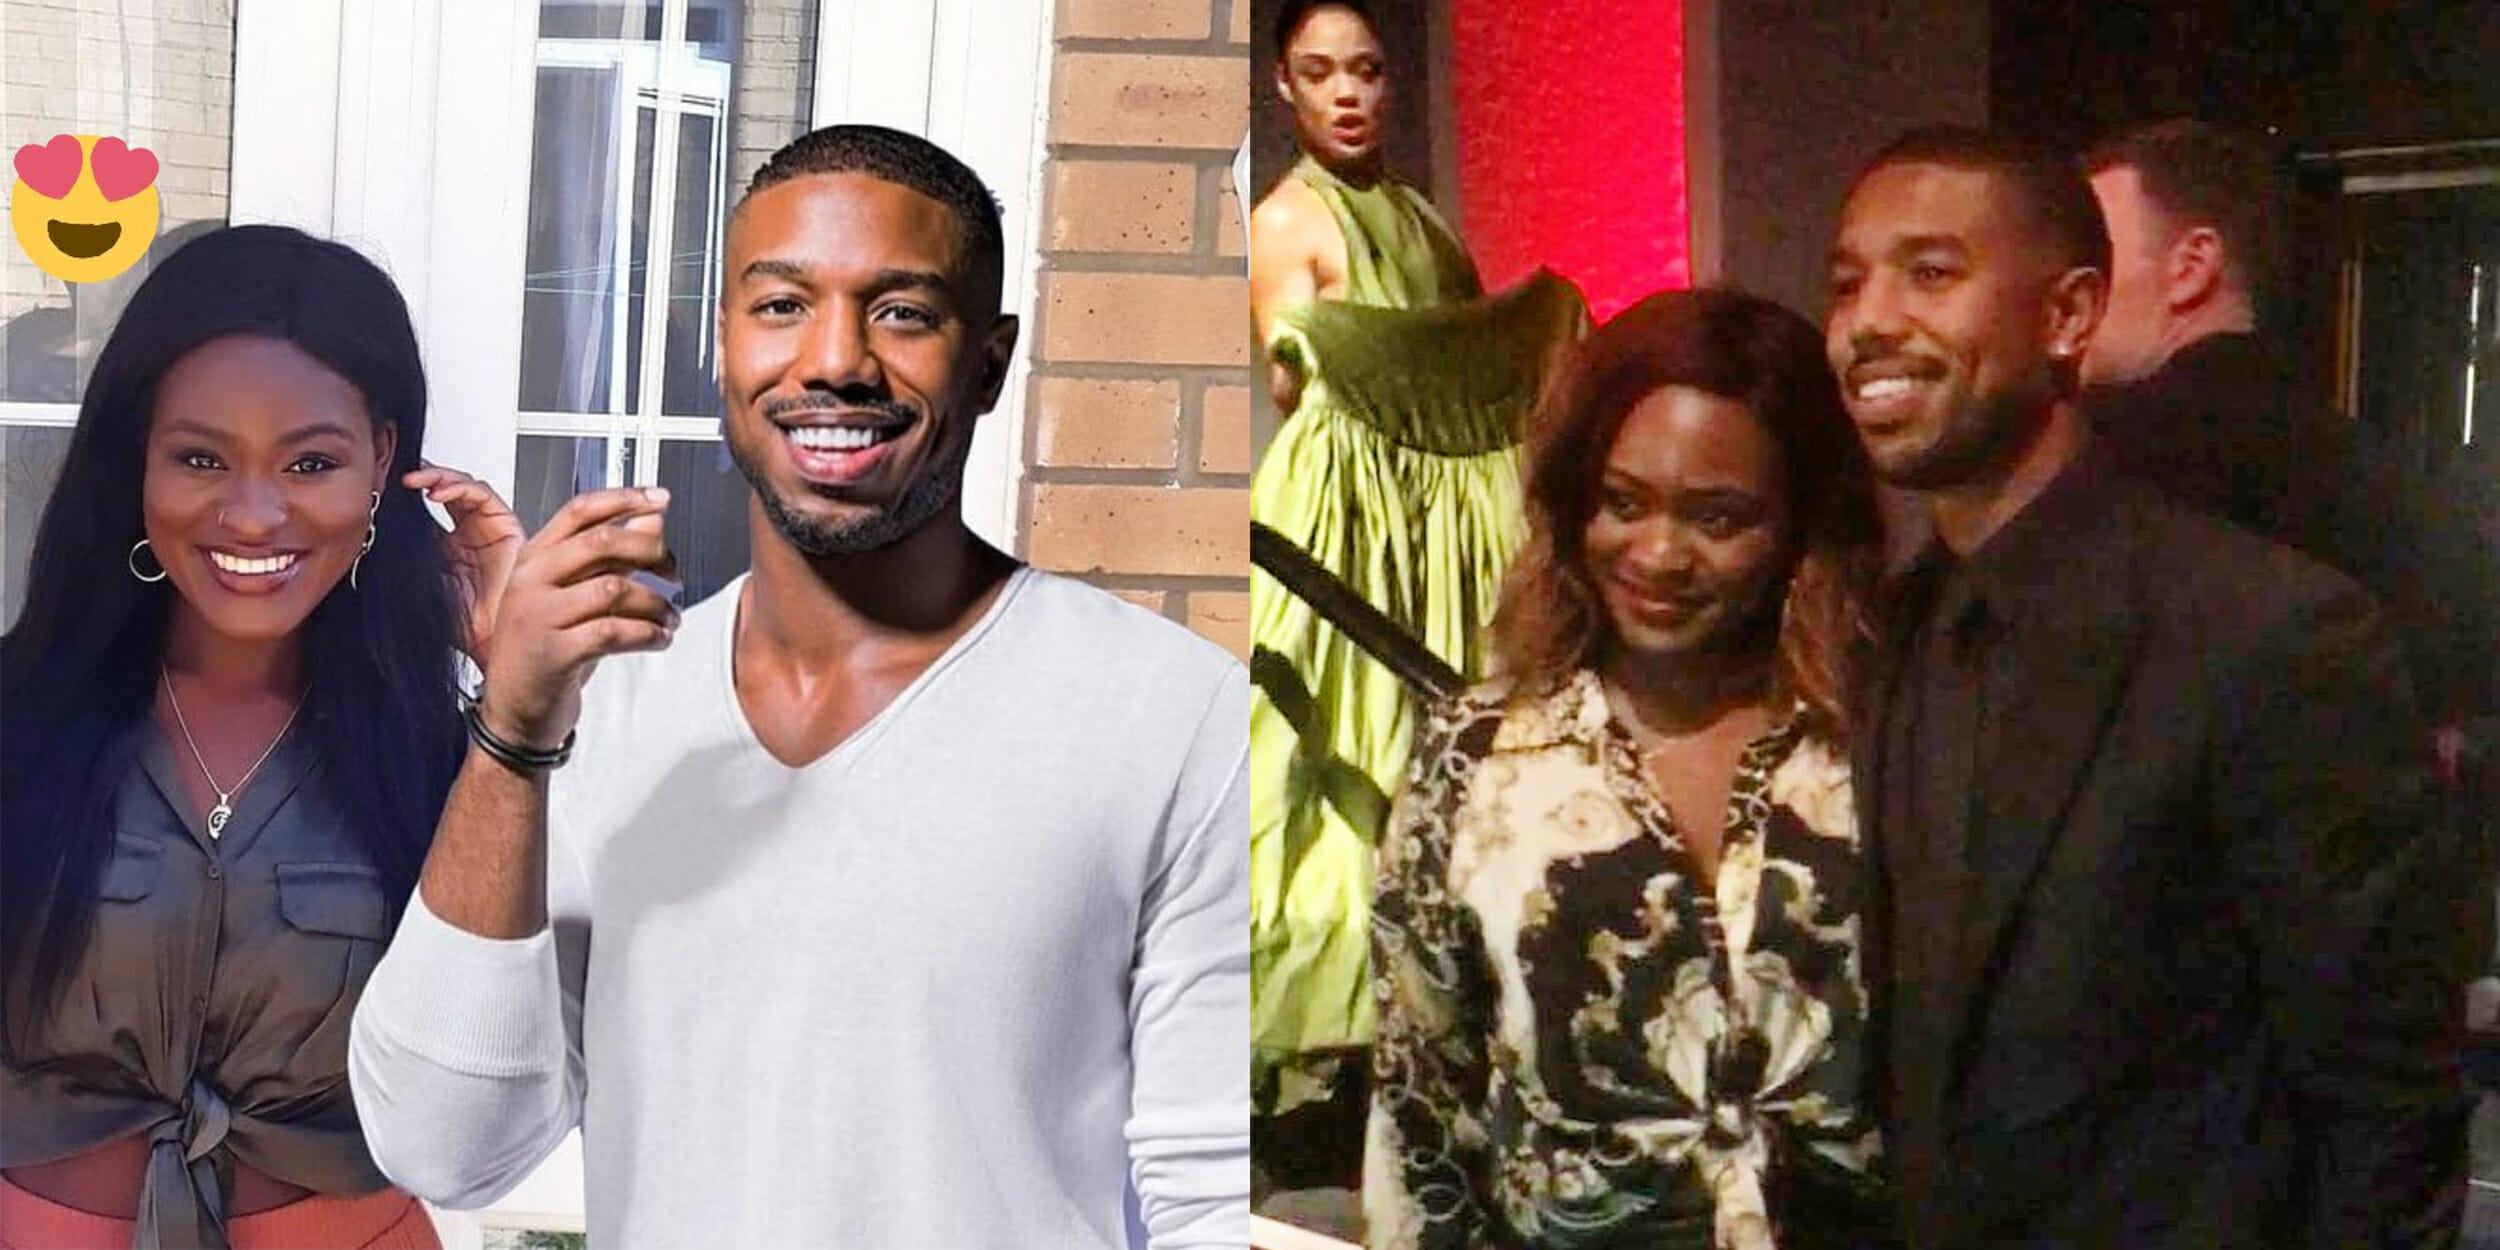 A woman met Michael B. Jordan after asking Twitter to help her find him